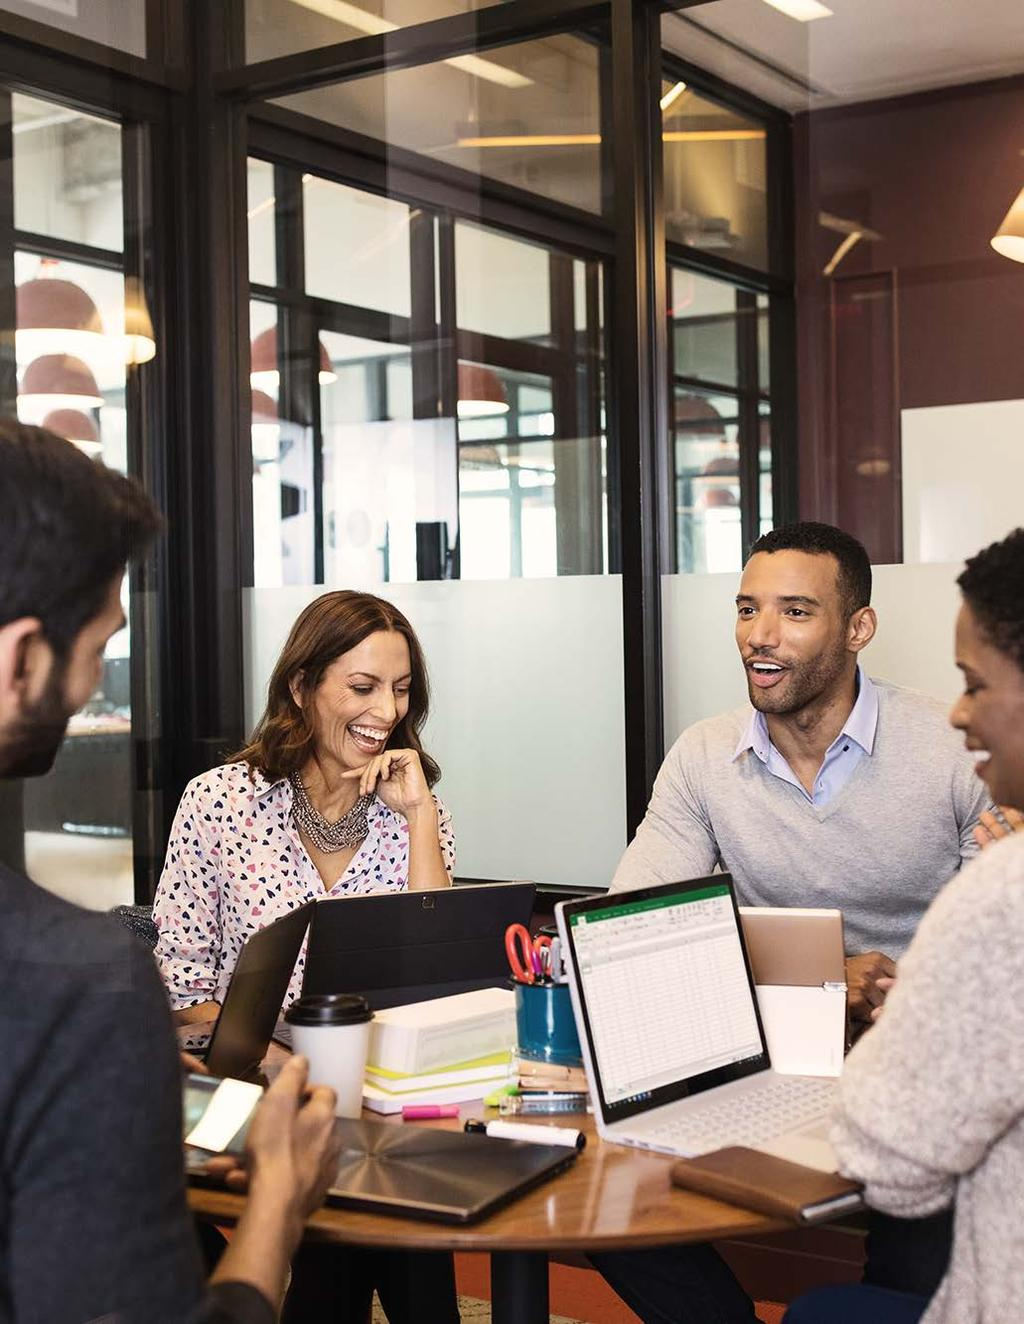 Preparing the workplace for tomorrow By becoming a strategic partner today, IT can help bring together people, processes, and technology to create a digital workplace that enables continued growth